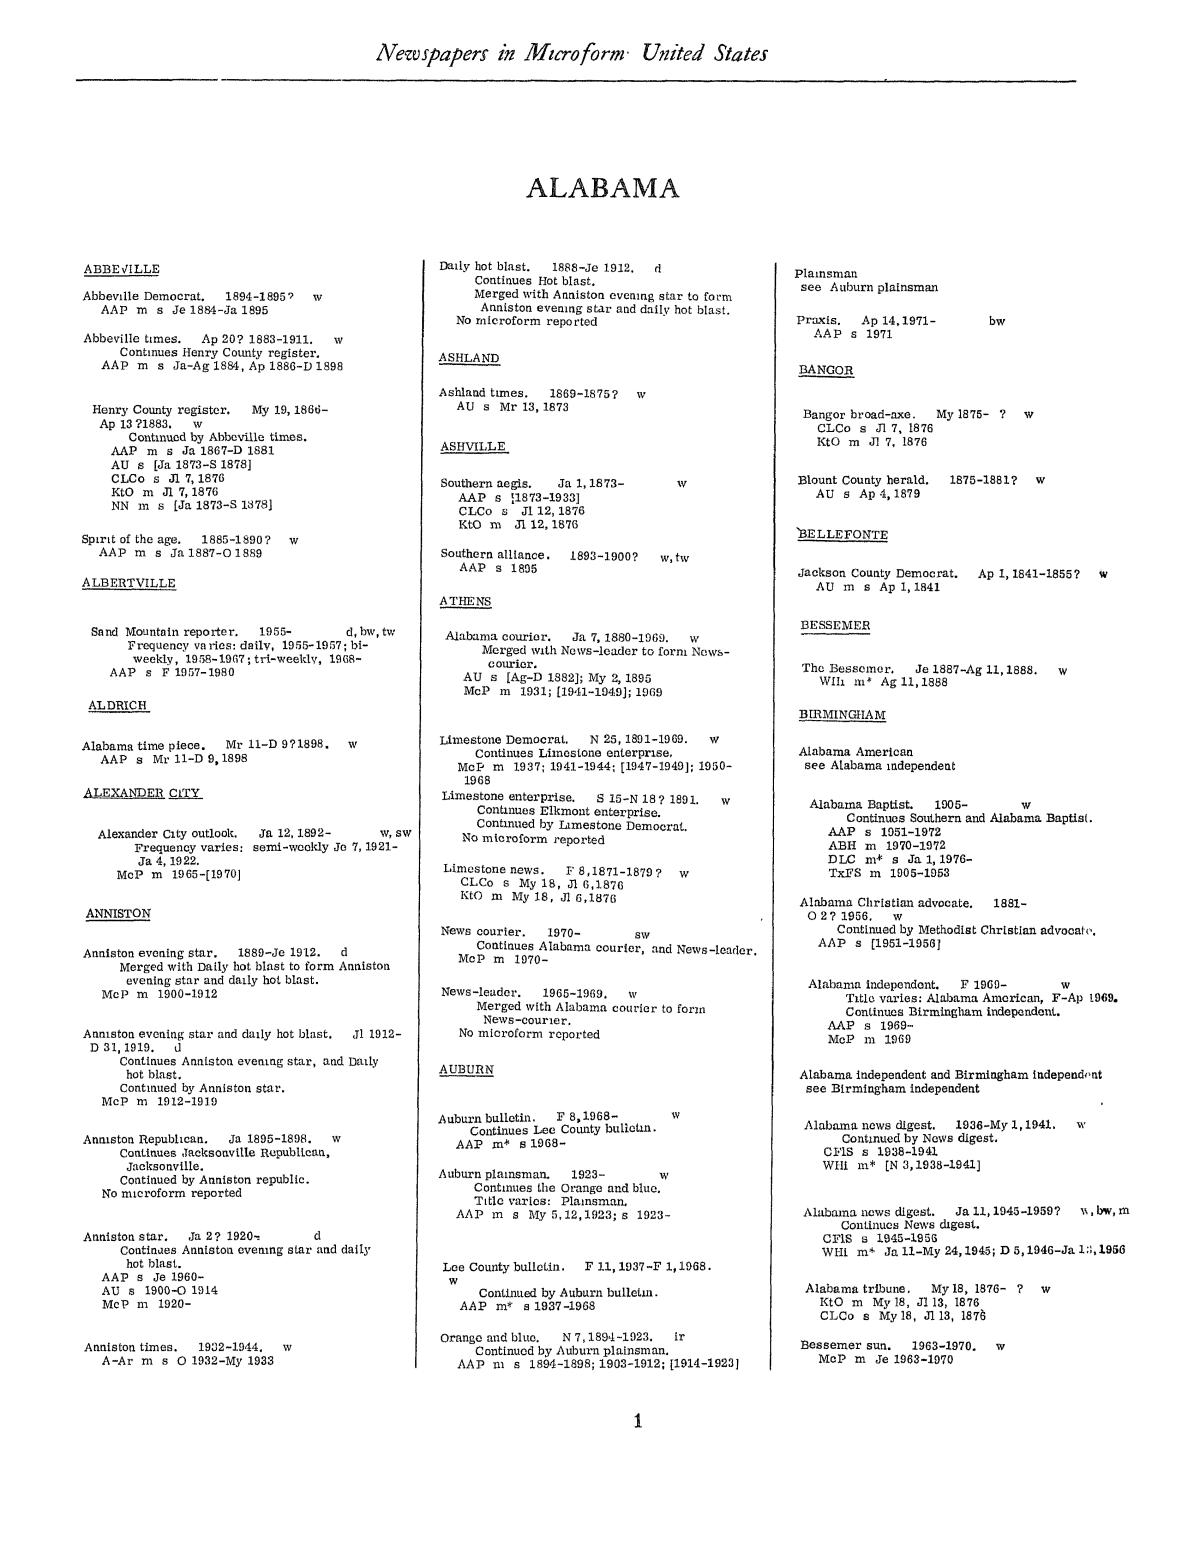 Library of Congress Catalogs: Newspapers in Microform, United States, 1948-1983, Volume 1 A-O                                                                                                      1